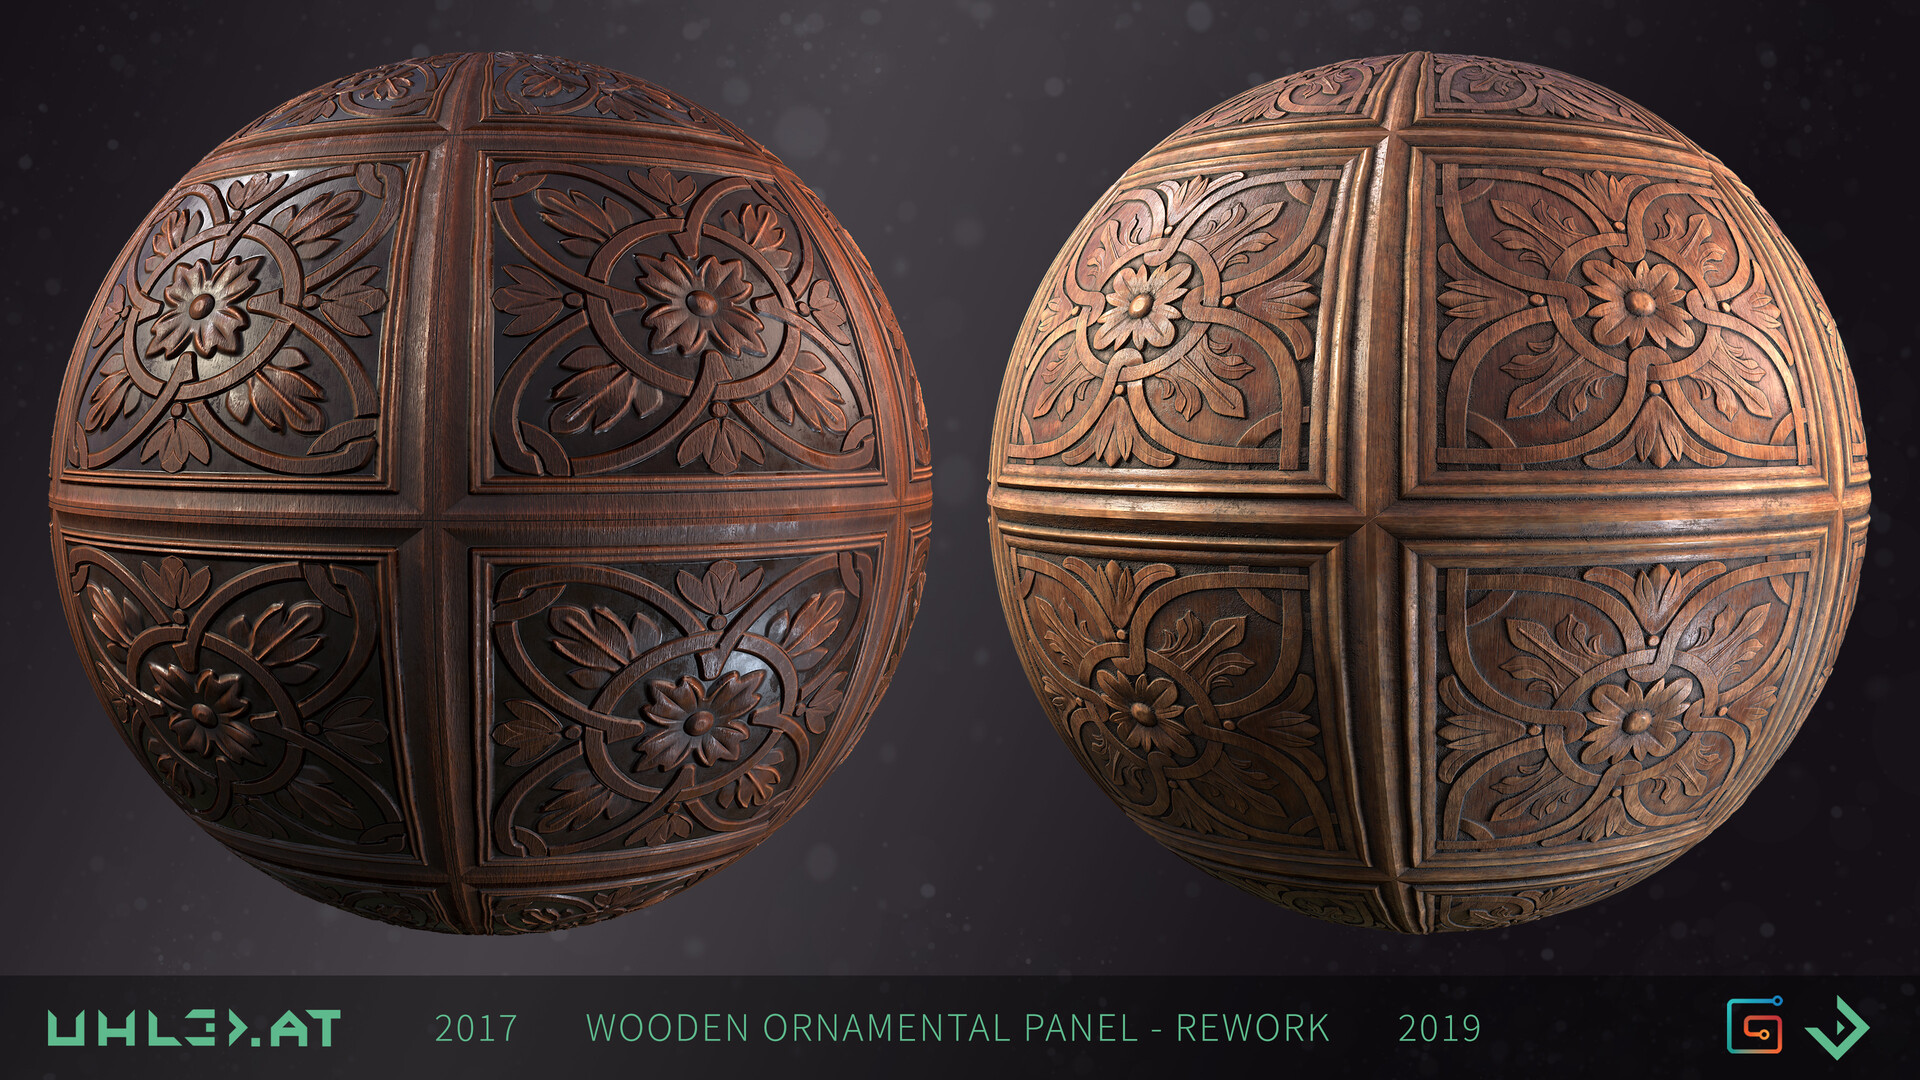 Dominik uhl wood panel ornament rework 07